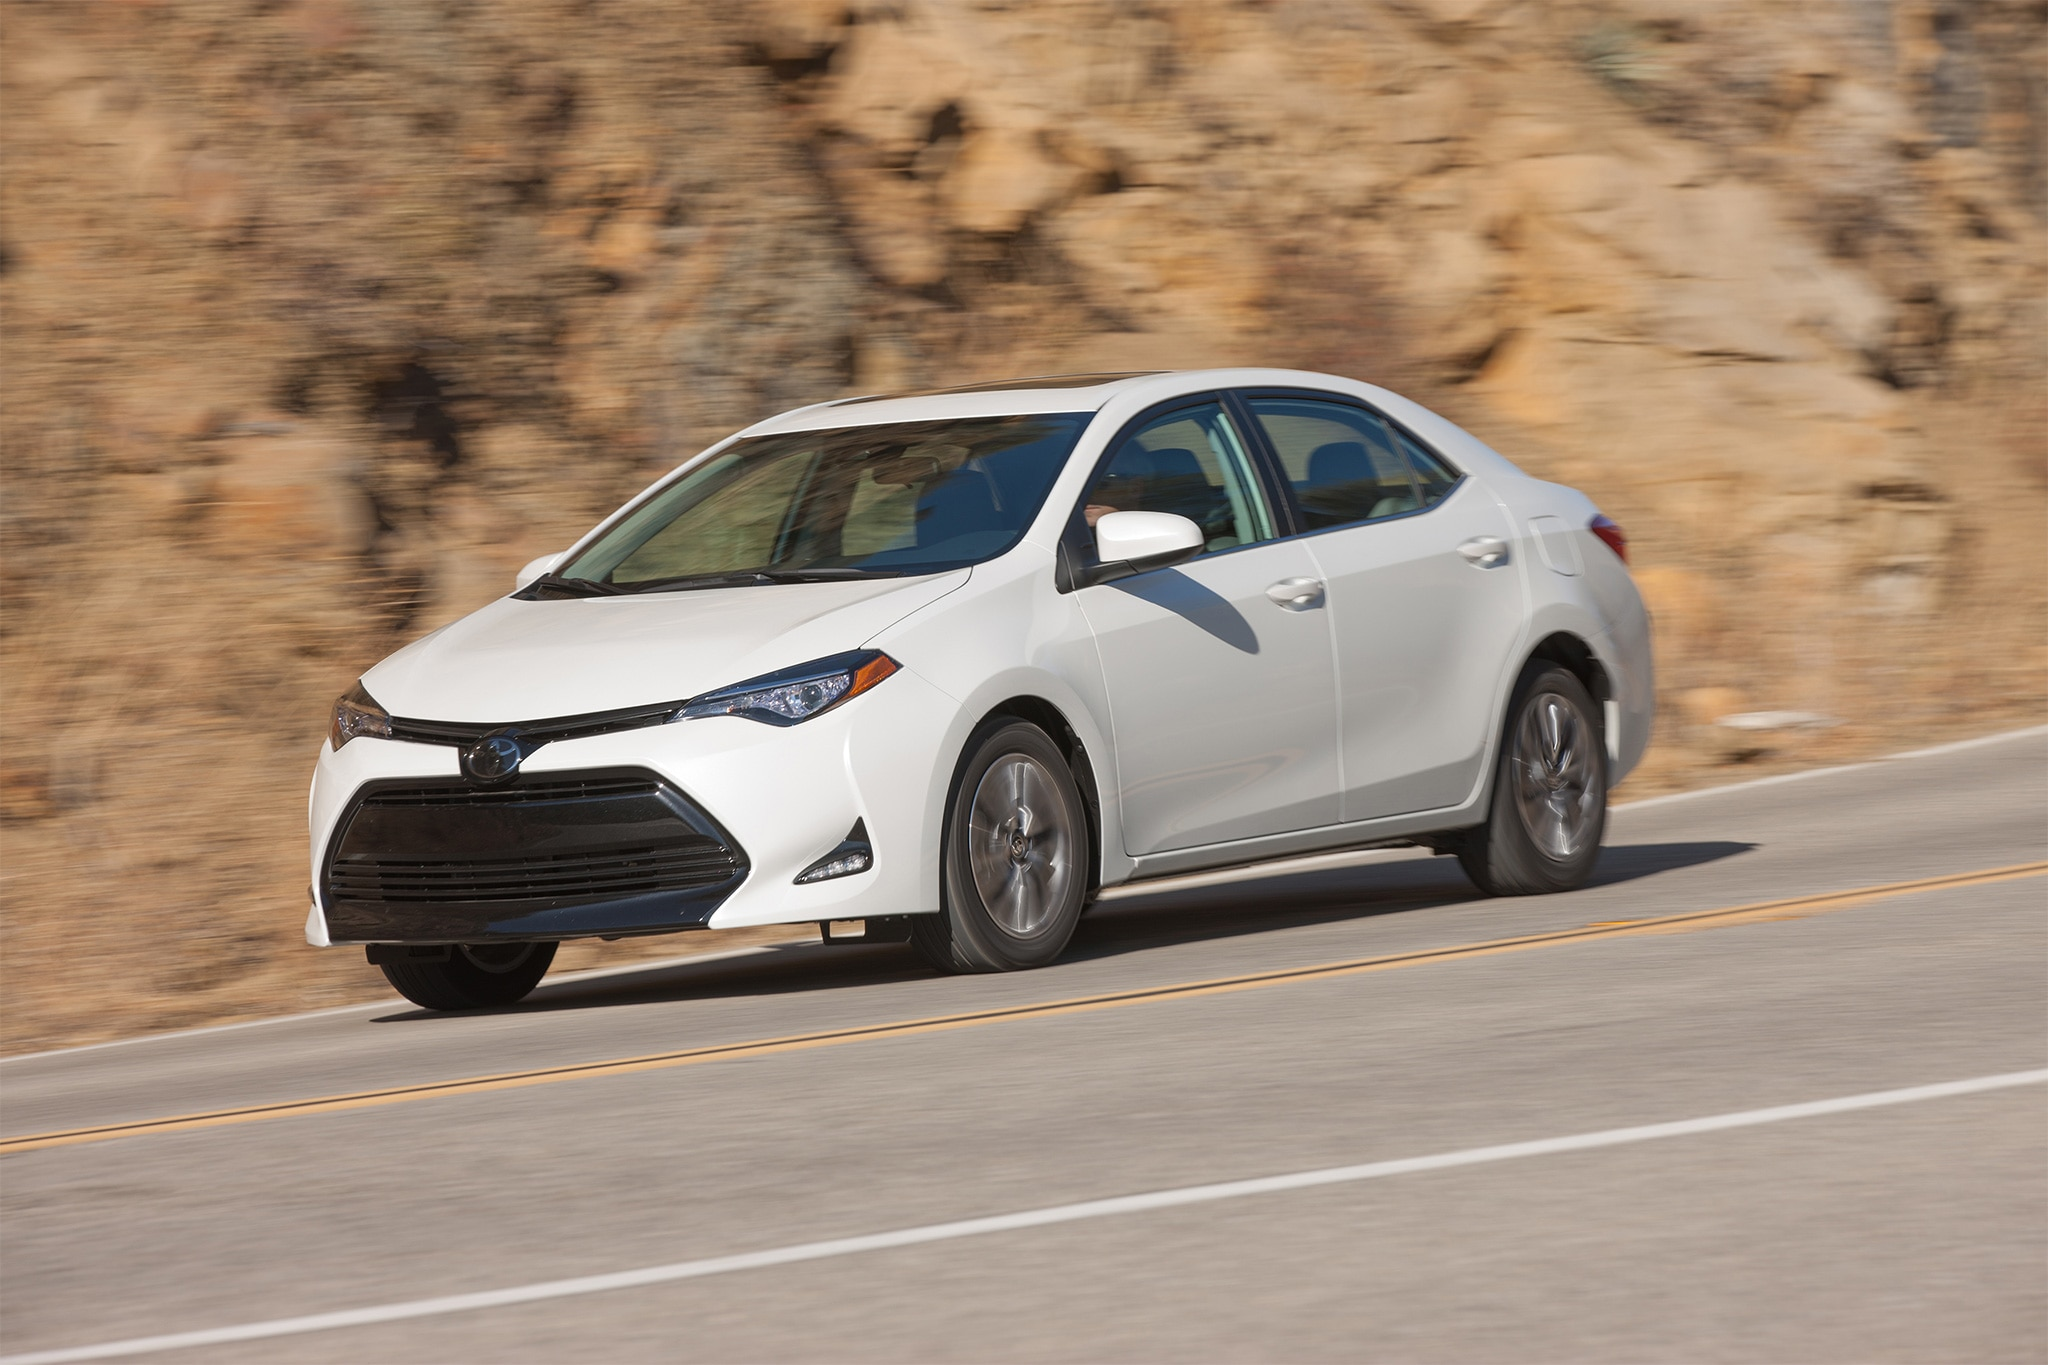 2017 Toyota Corolla ECO Front Three Quarter In Motion 02